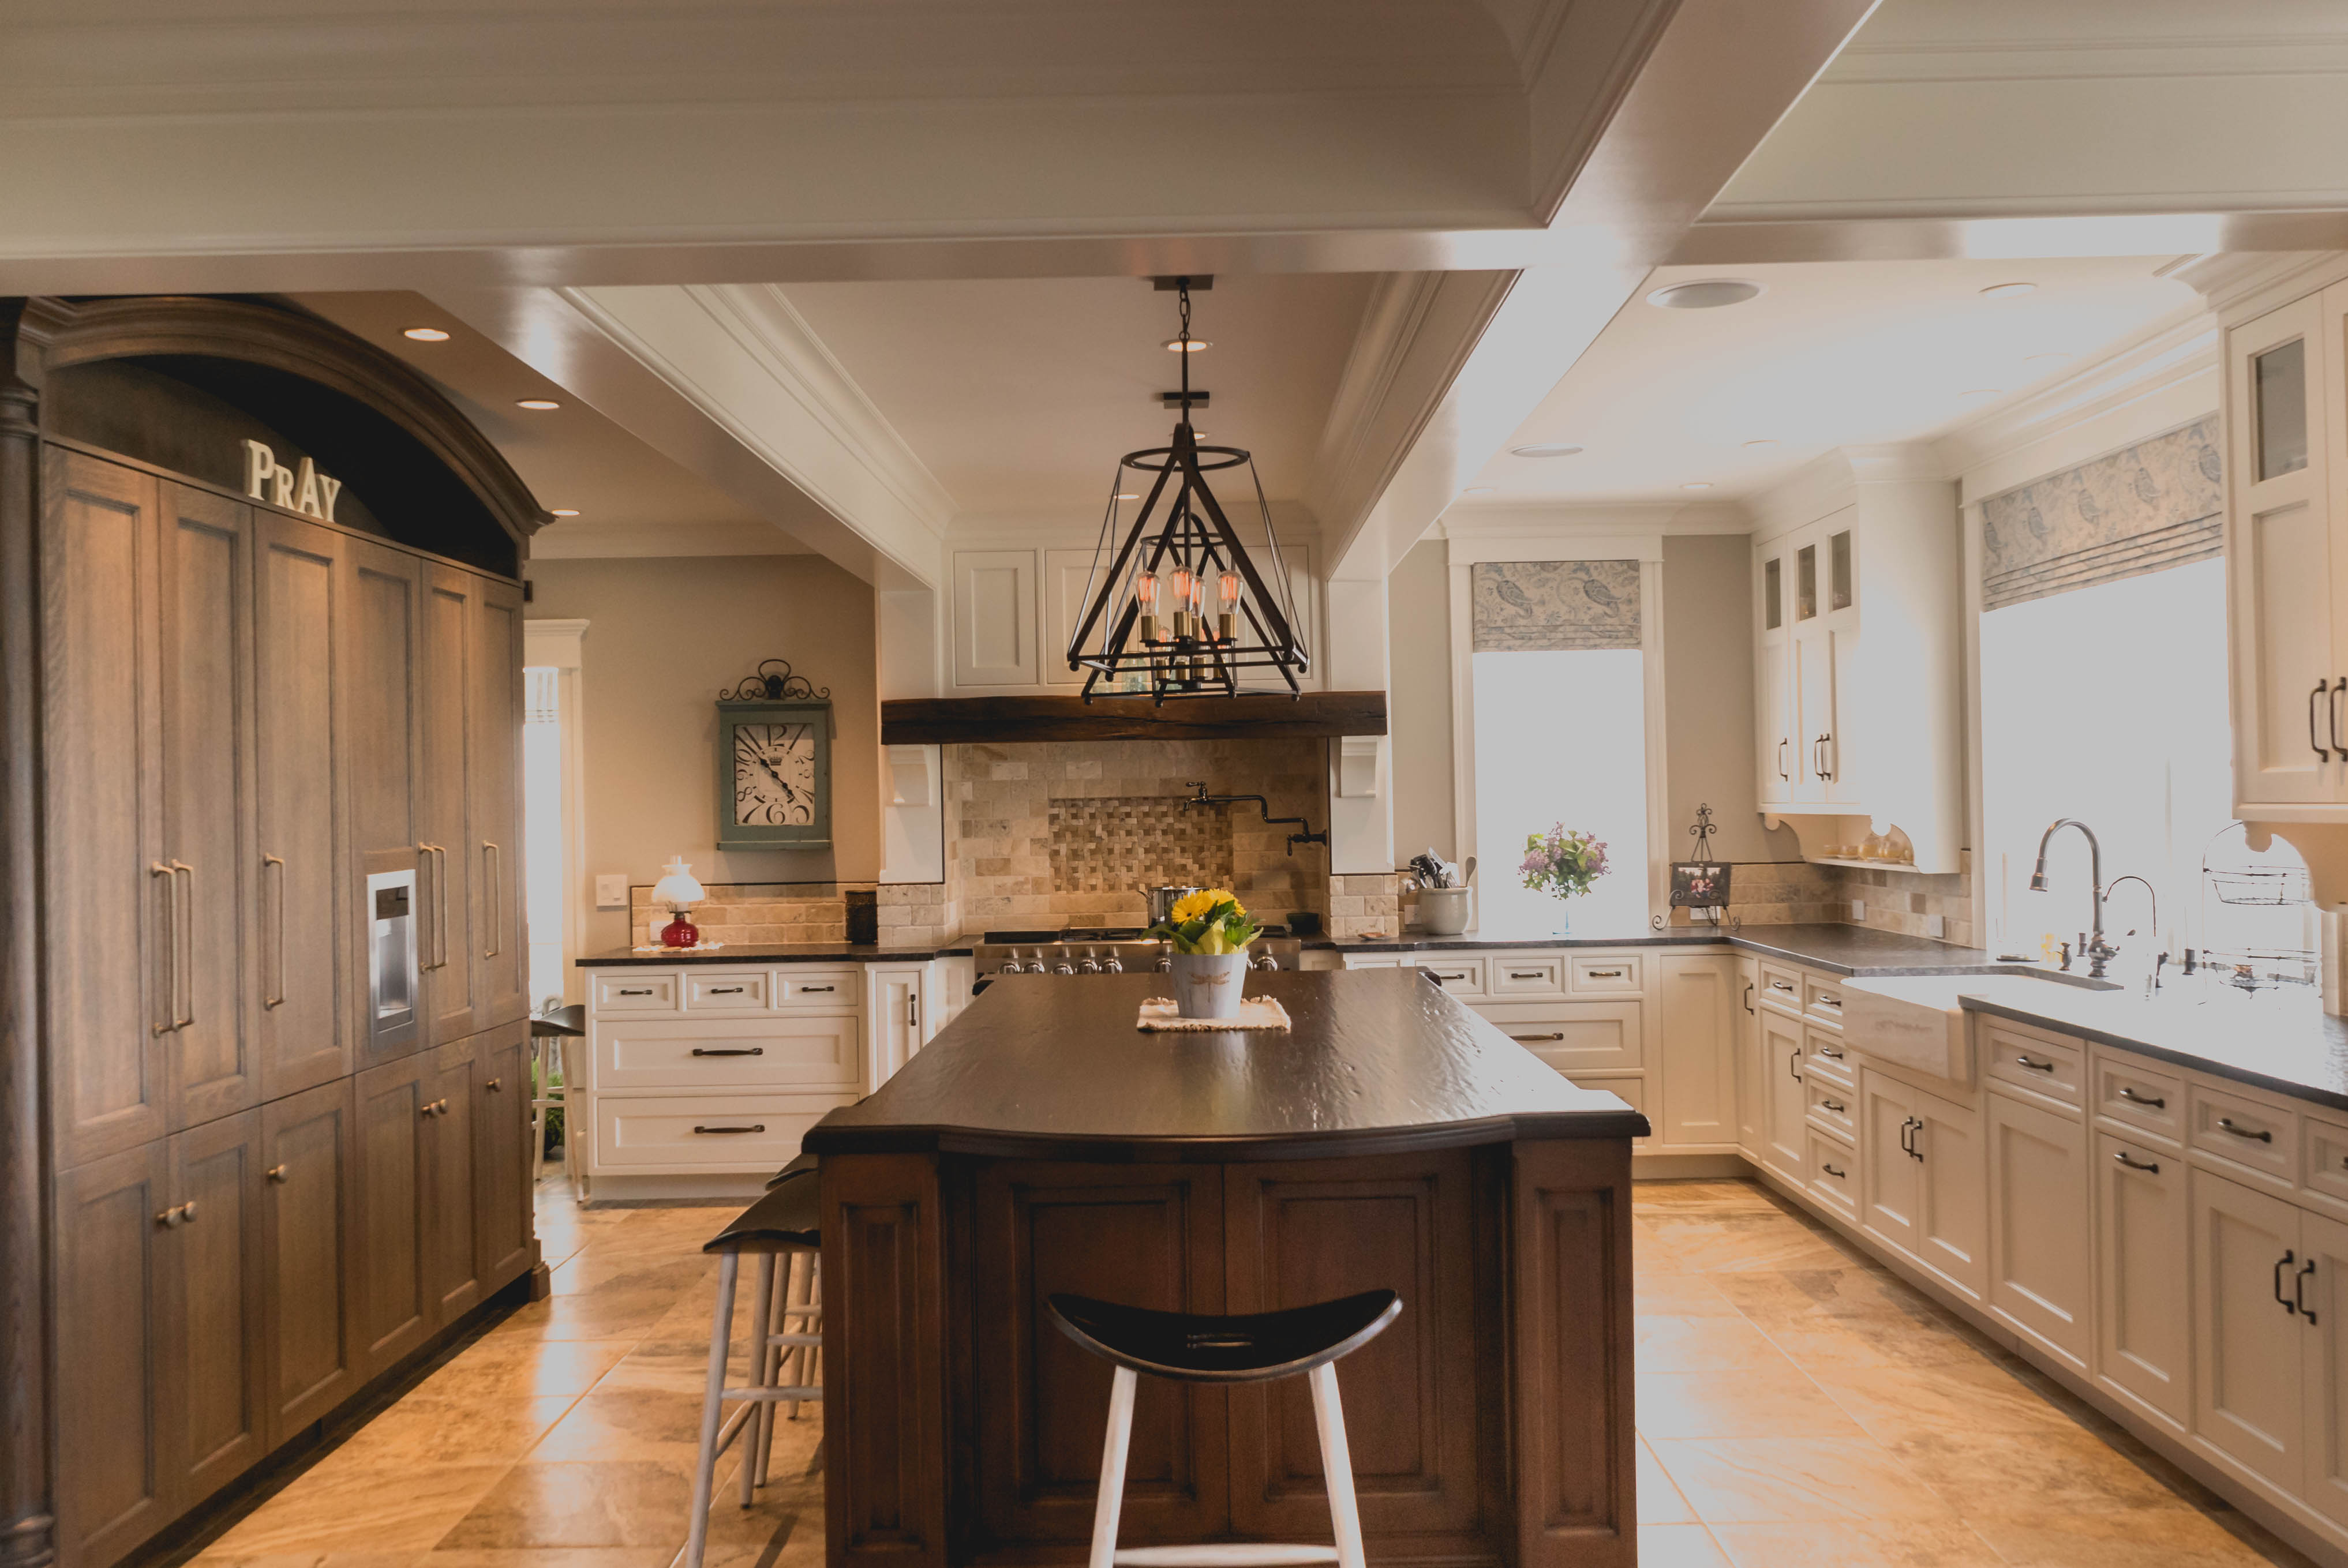 Photo of a farmhouse kitchen remodel project by Jim Martin Design